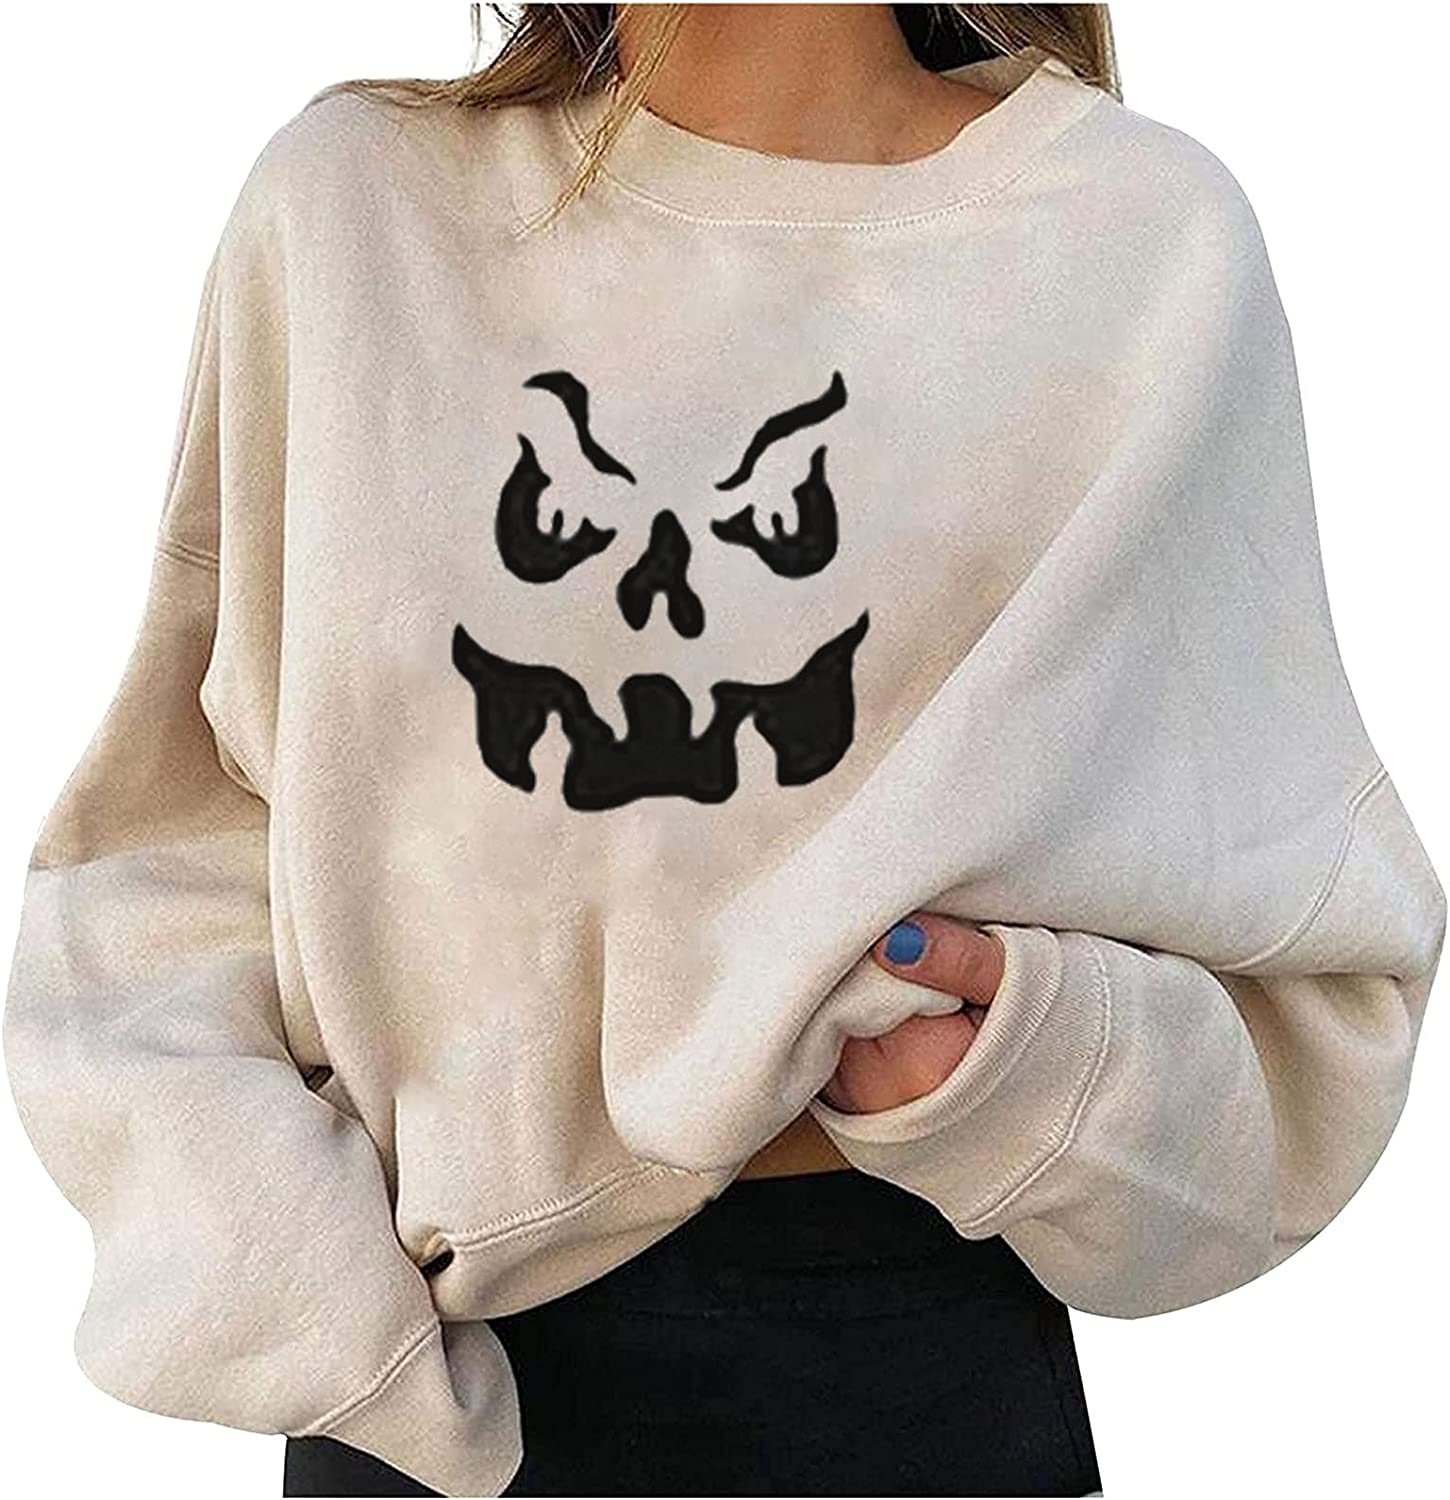 Graphic Sweatshirts Large special price !! for Women Funny Financial sales sale Ghost Printed Casual Lo Face